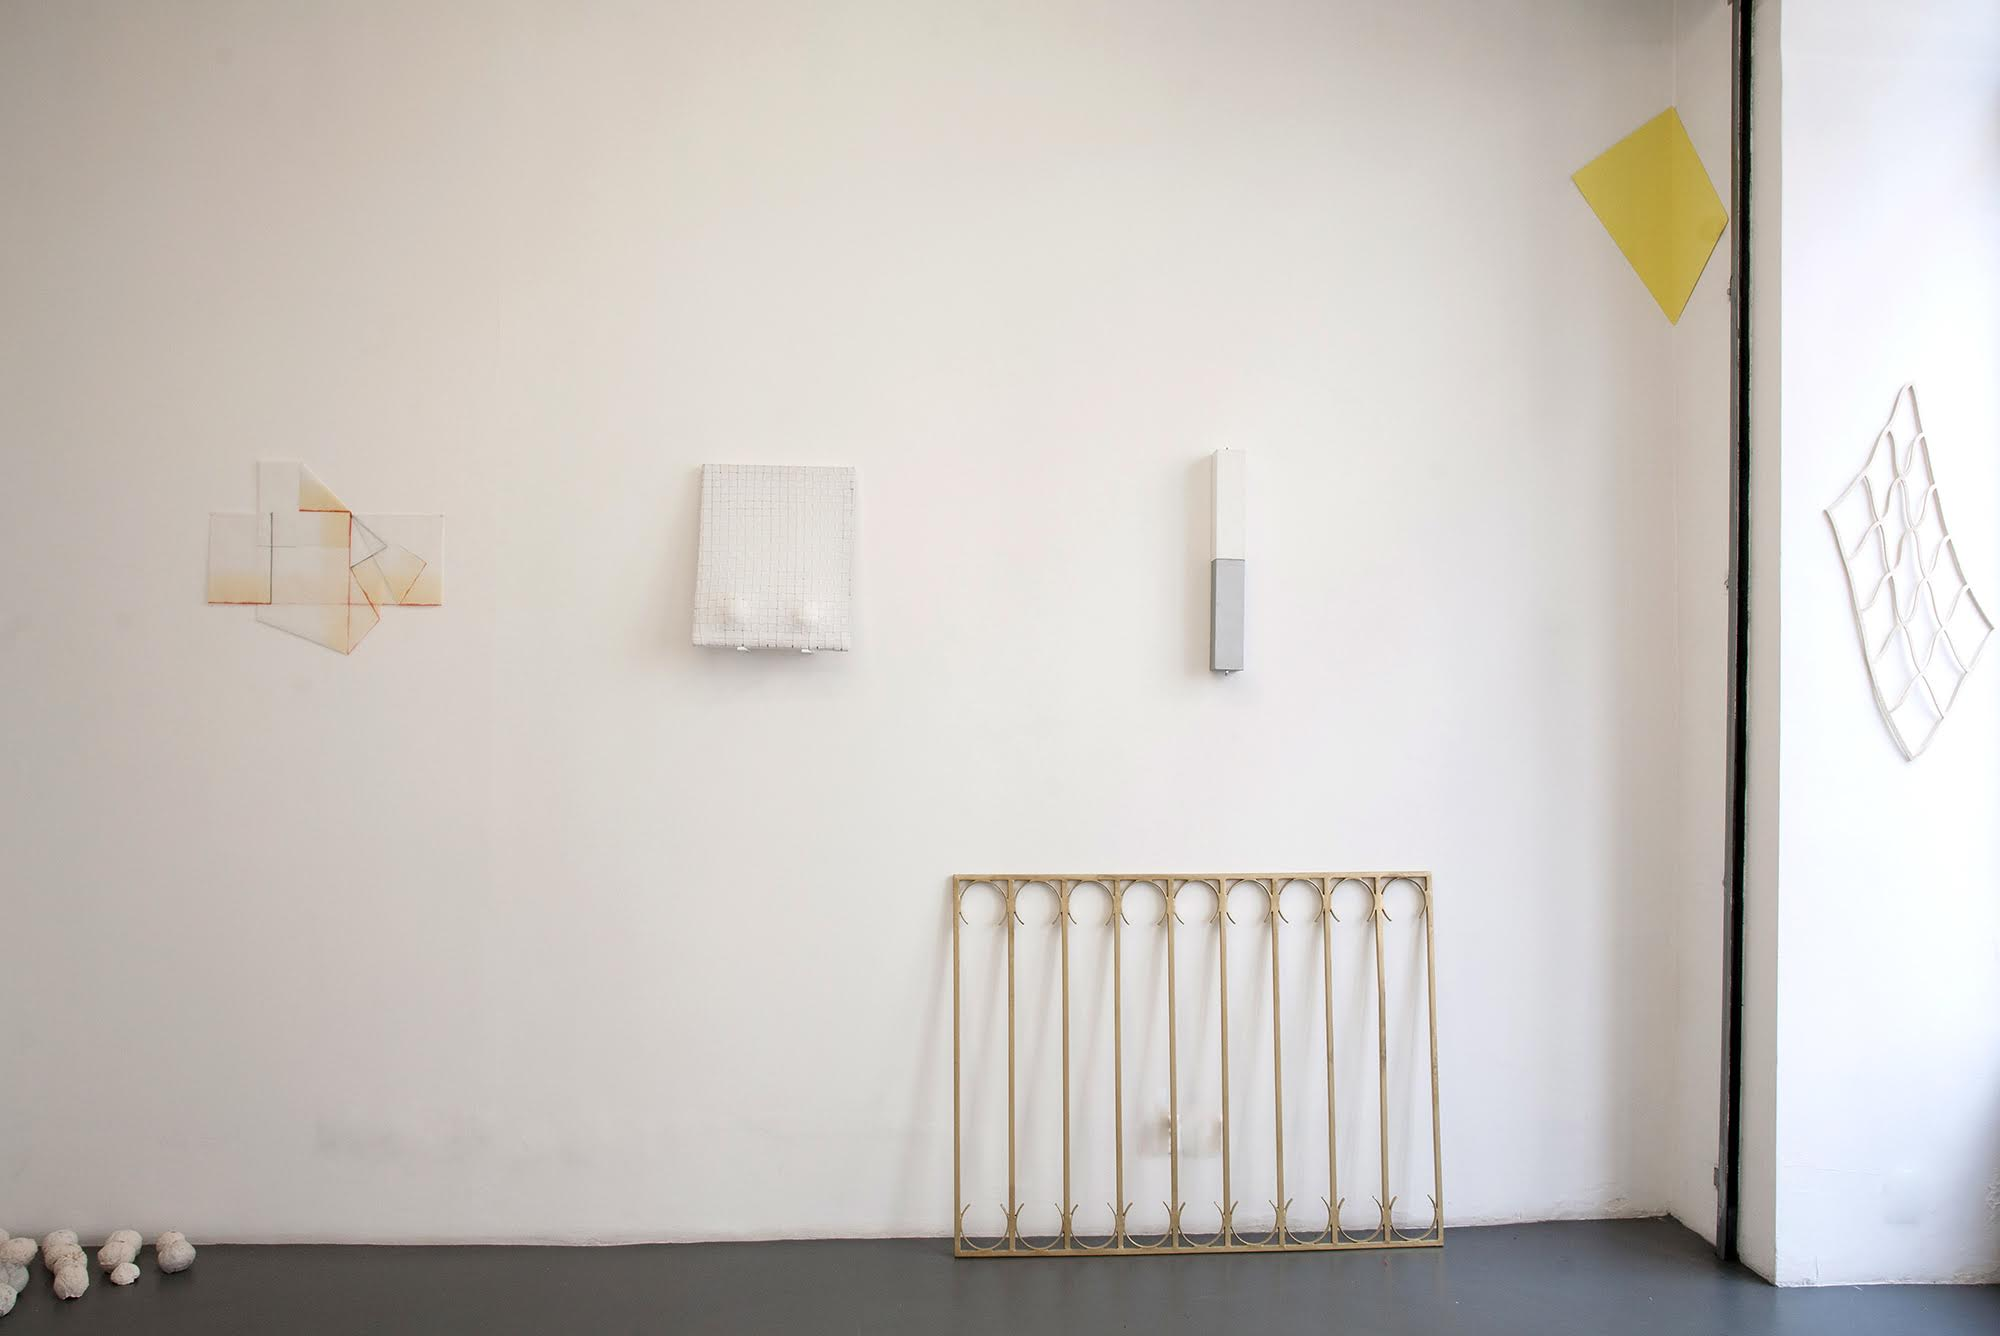 Kaolin, 2015  Group show. Emmanuel Herve Gallery, Paris.